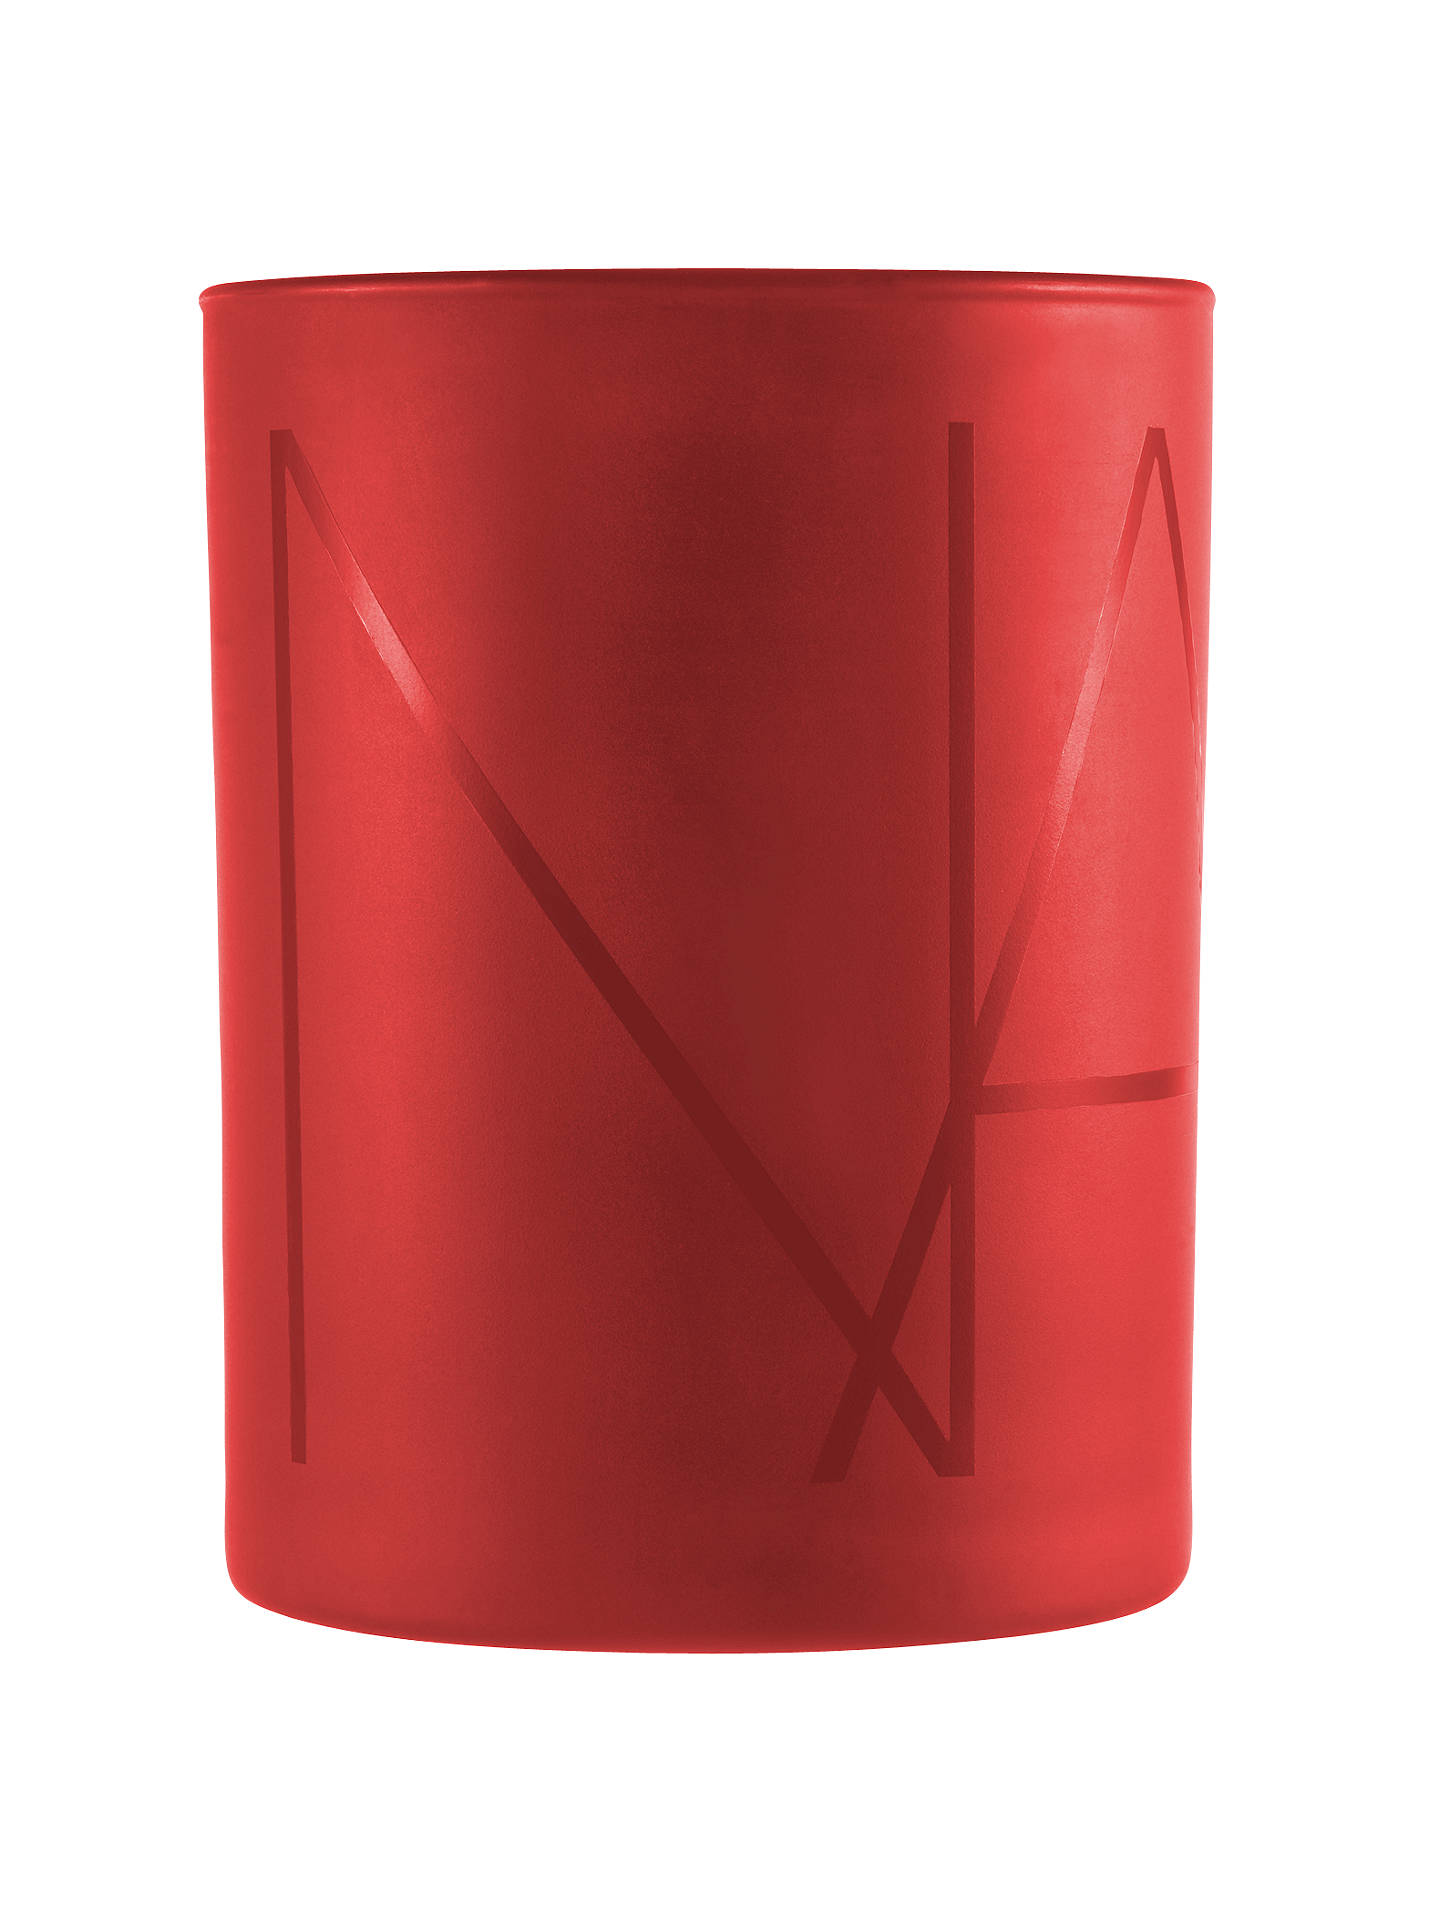 BuyNARS Scented Candles - Jaipur Online at johnlewis.com